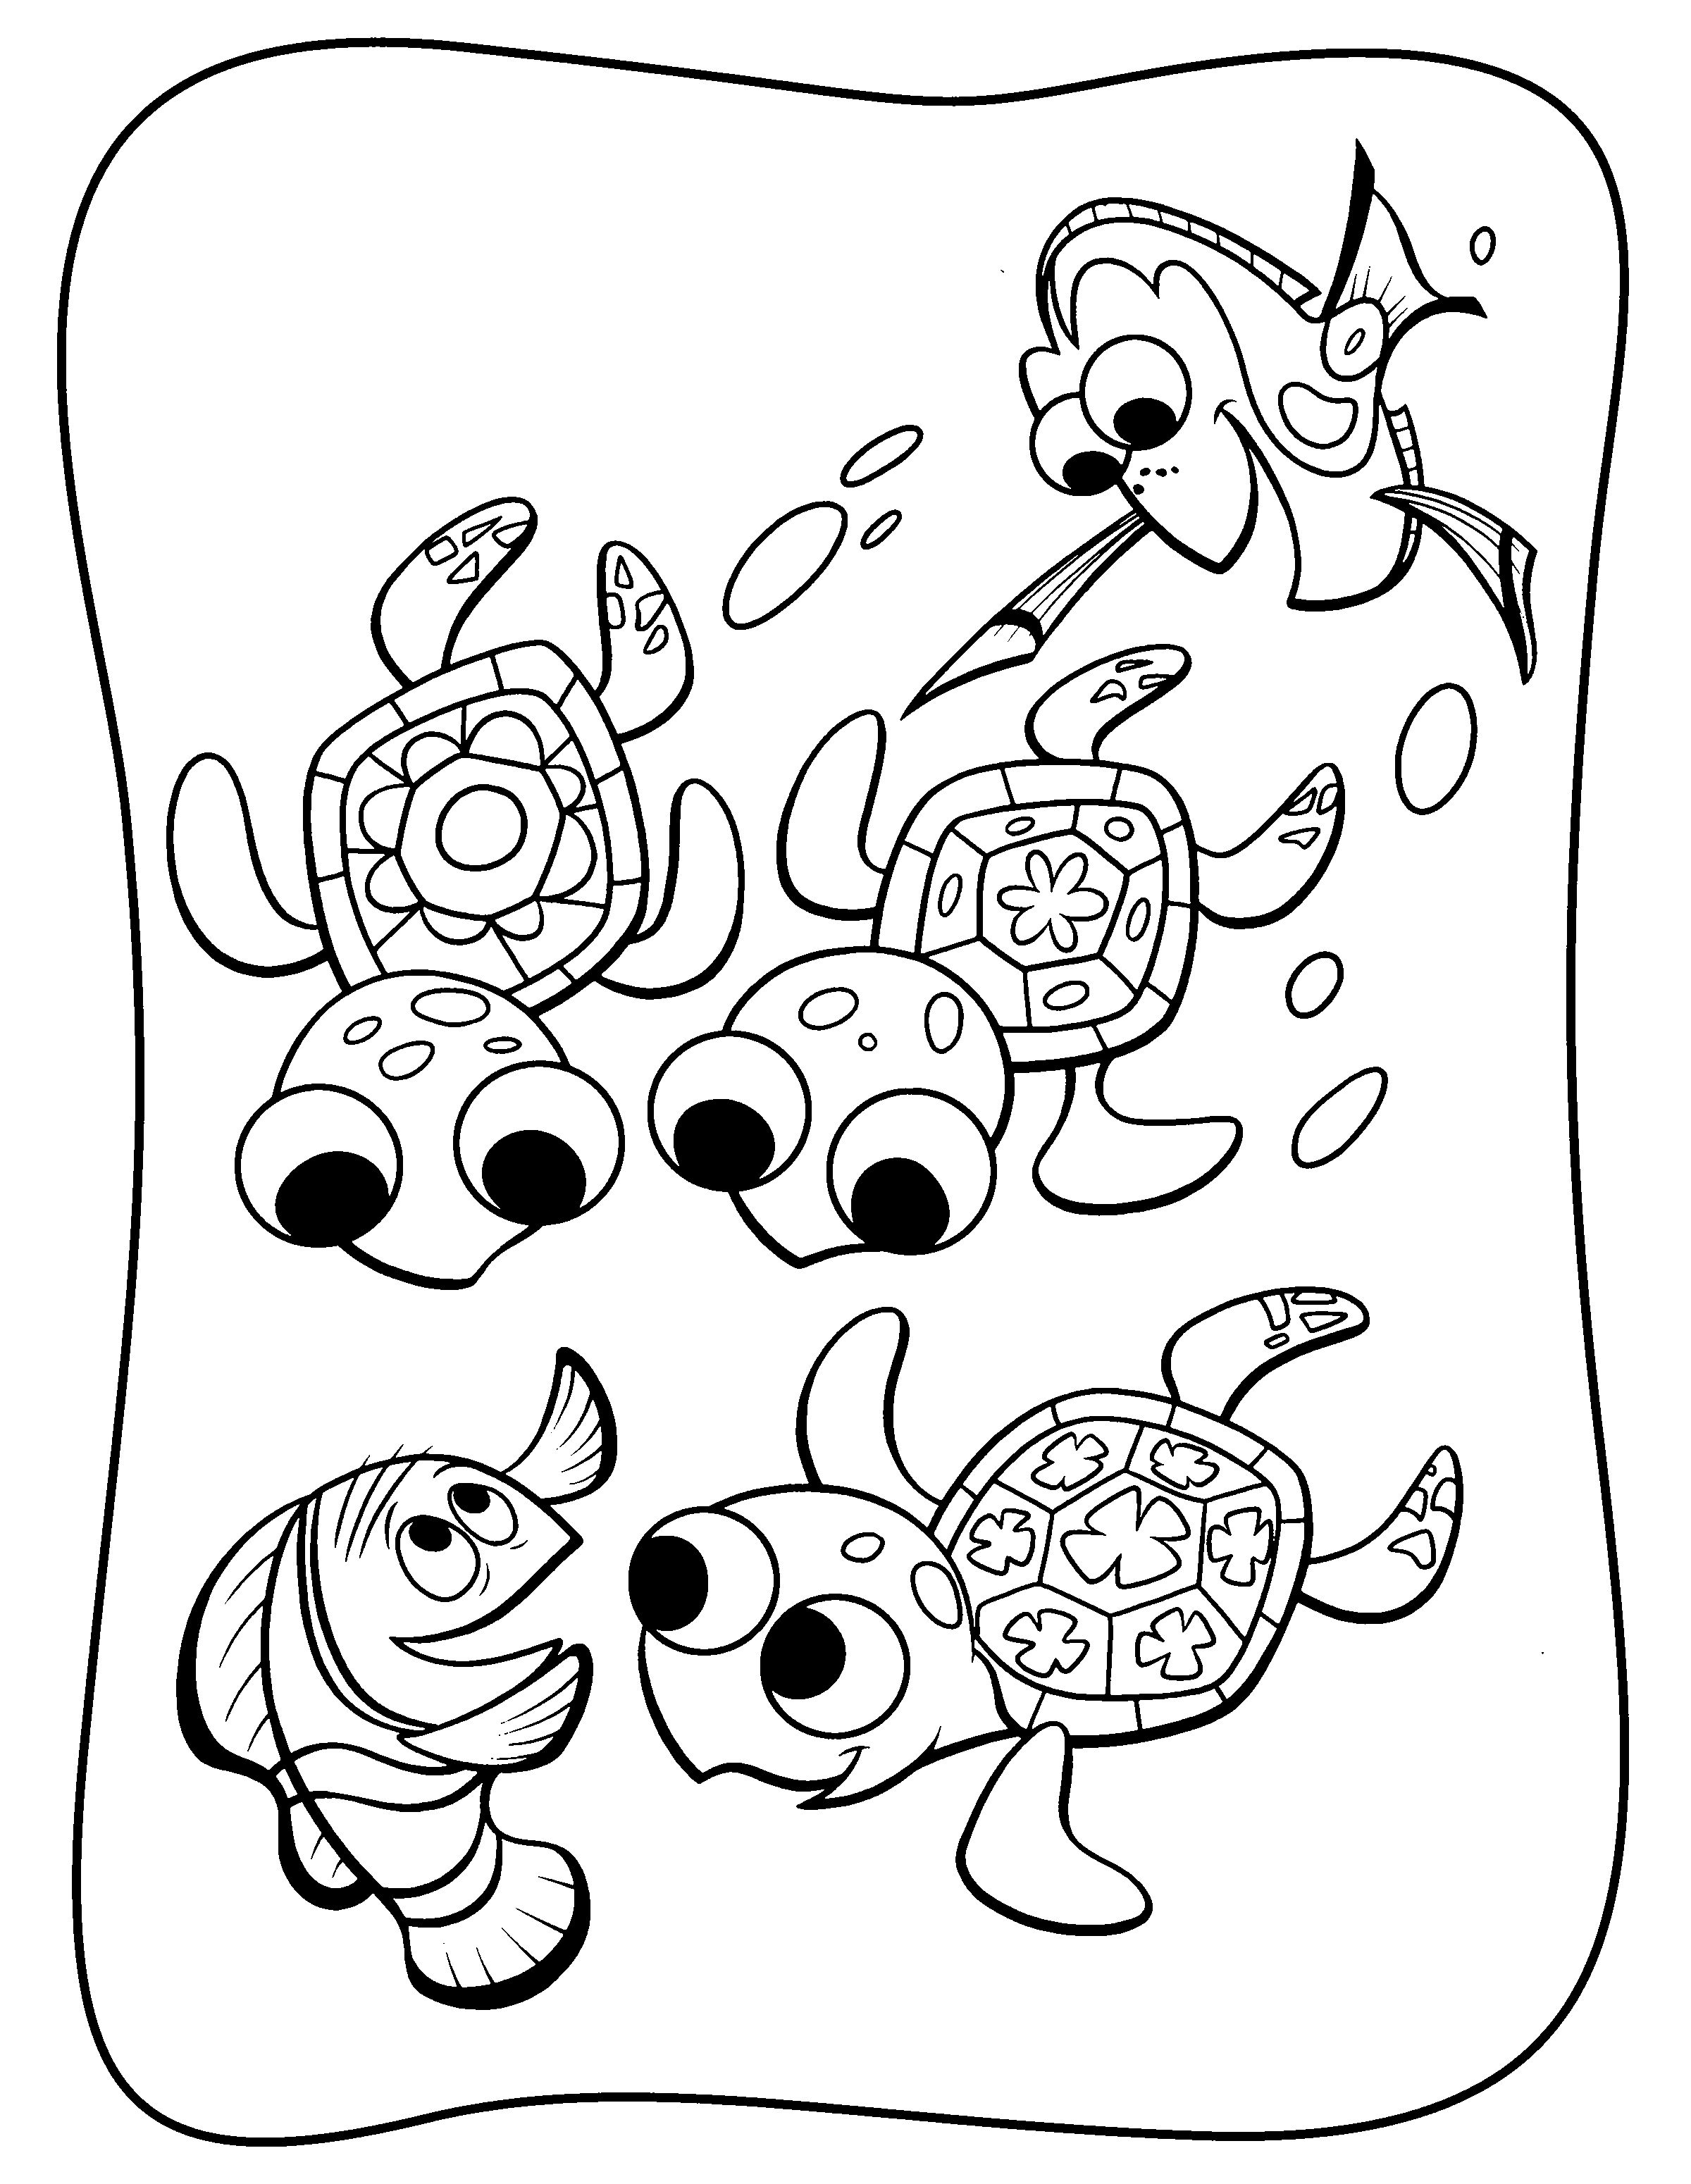 Dory coloring pages best coloring pages for kids for Coloring pages online